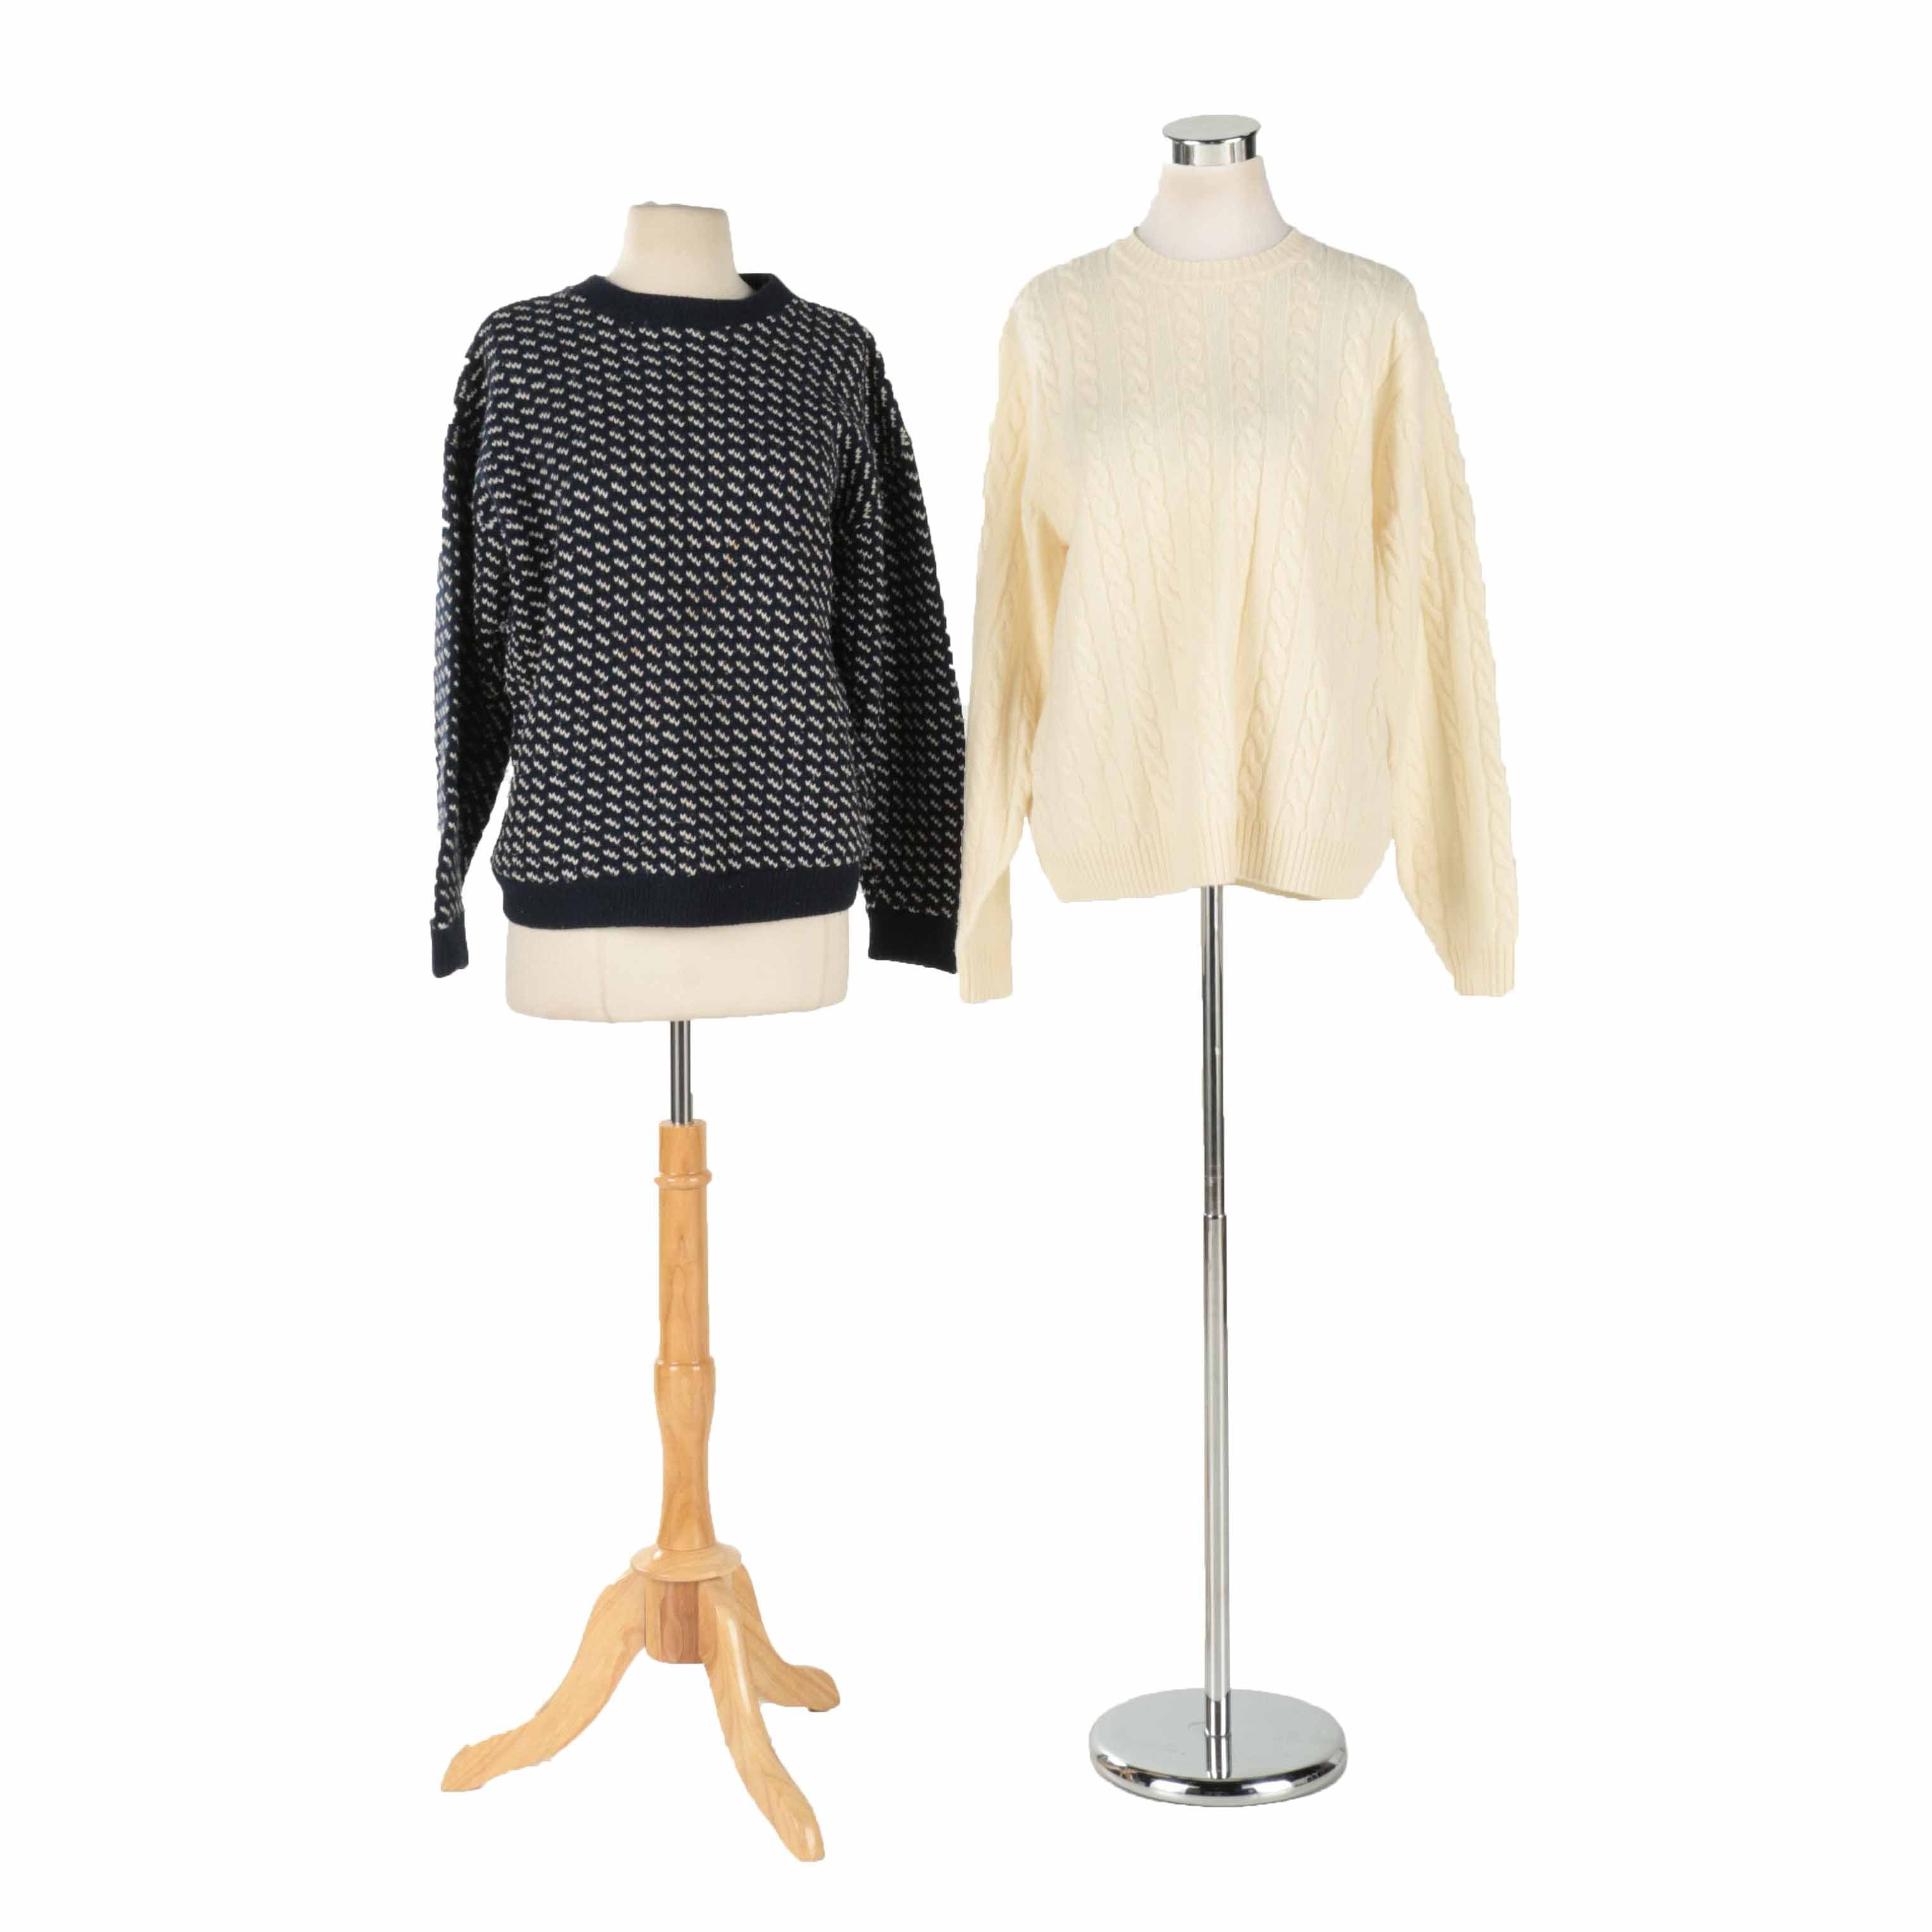 Women's Crew Neck Sweaters Including L.L. Bean and Land's End